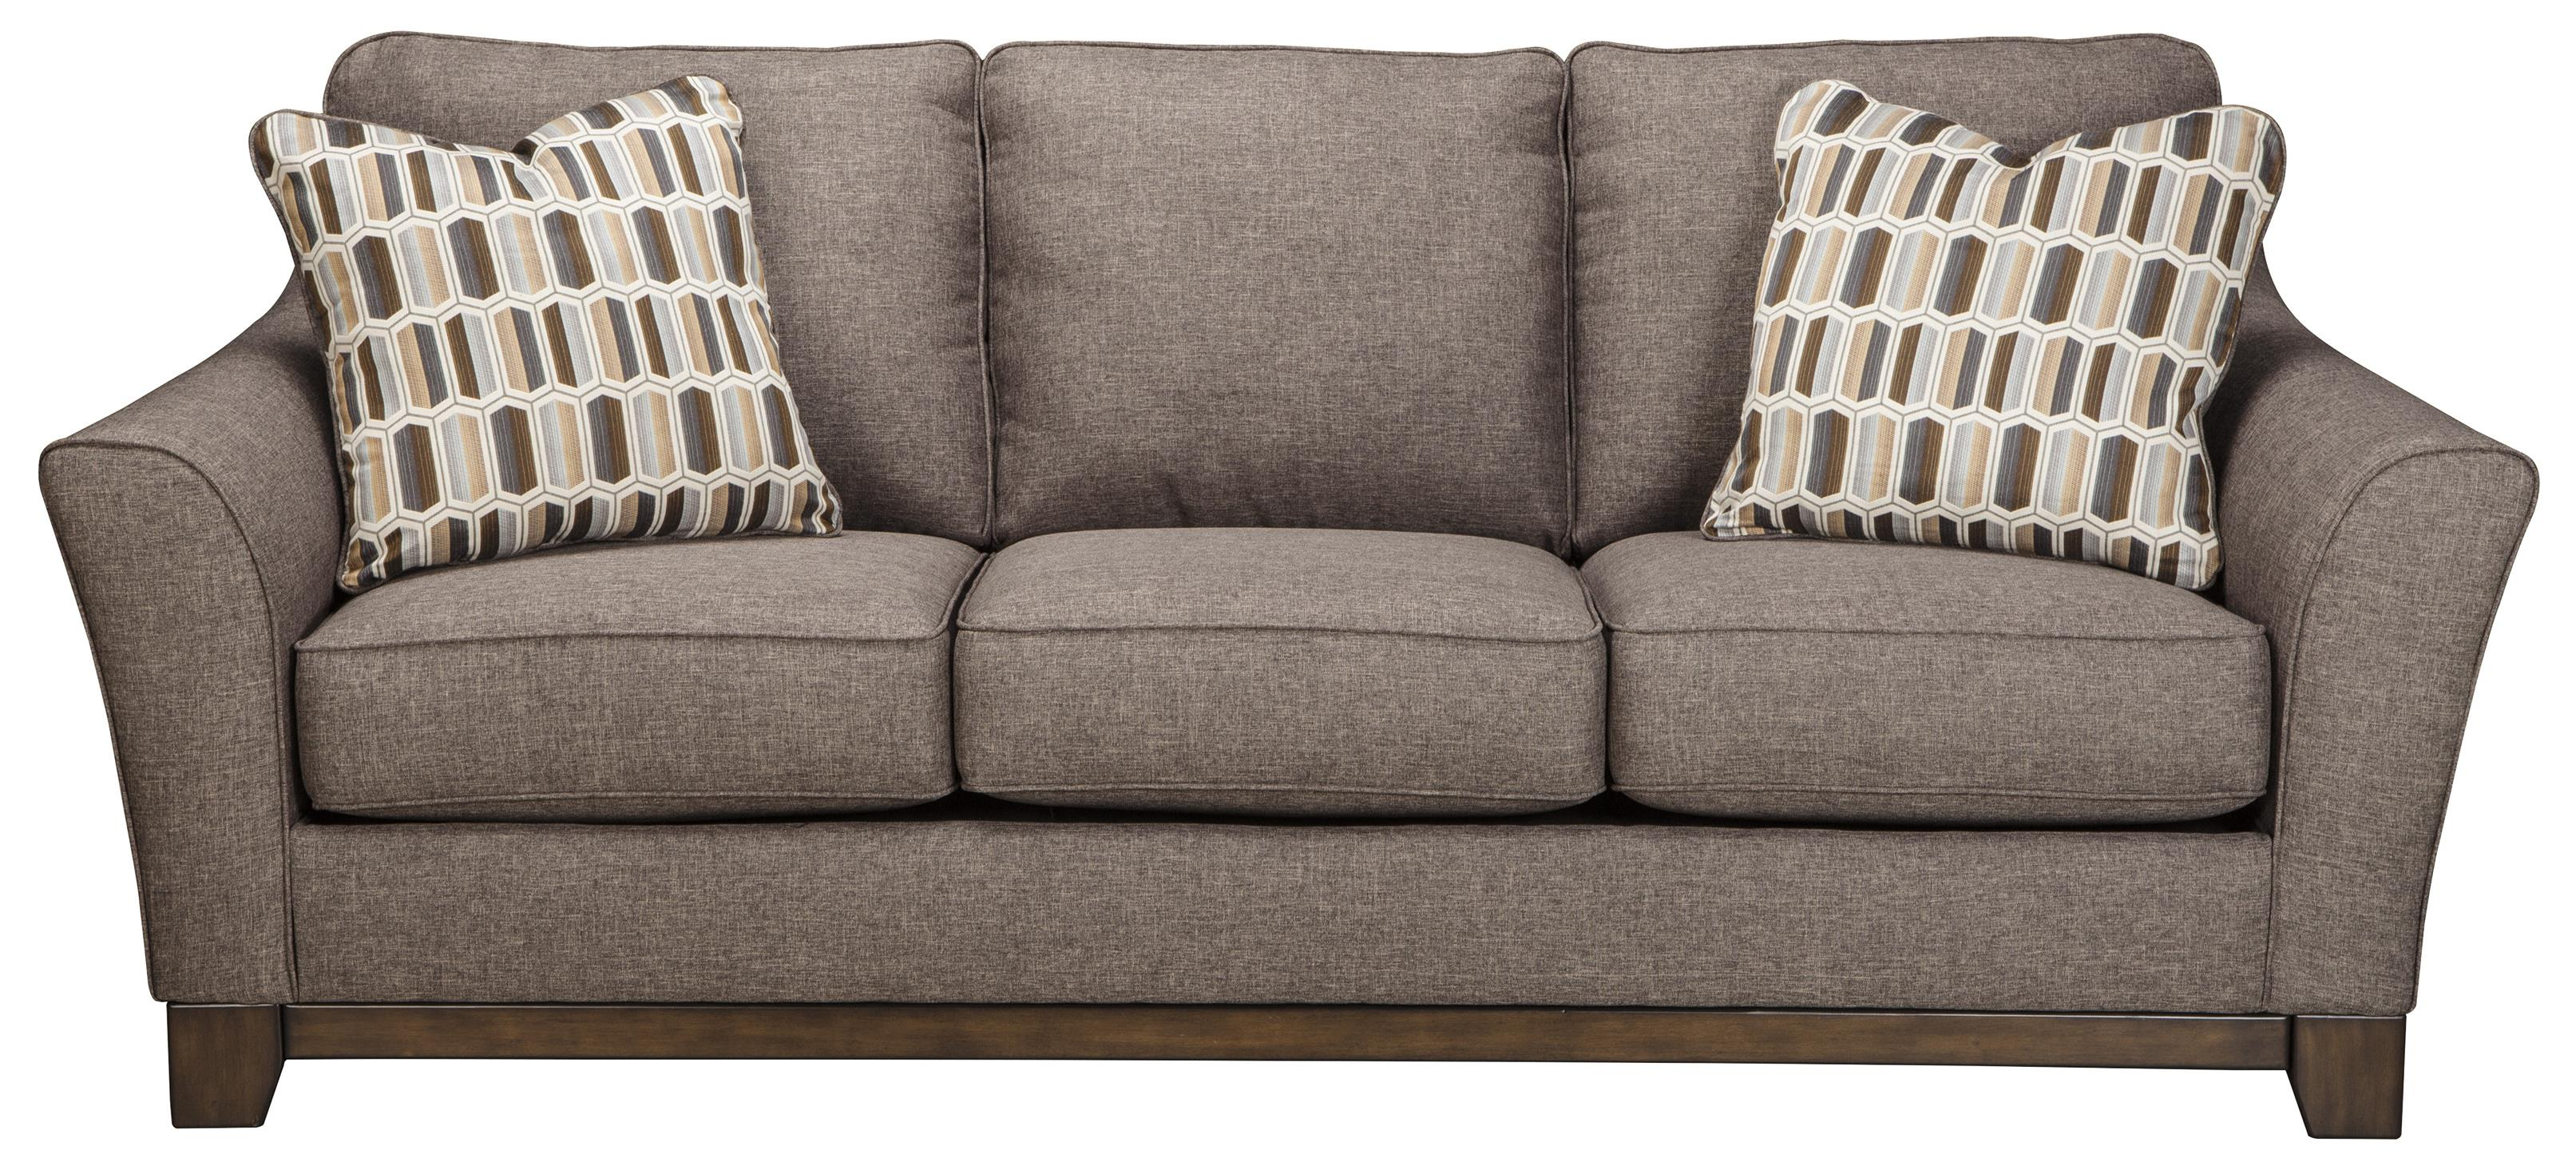 Benchcraft Janley Contemporary Sofa With Front Wood Rail Michael 39 S Furniture Warehouse Sofas